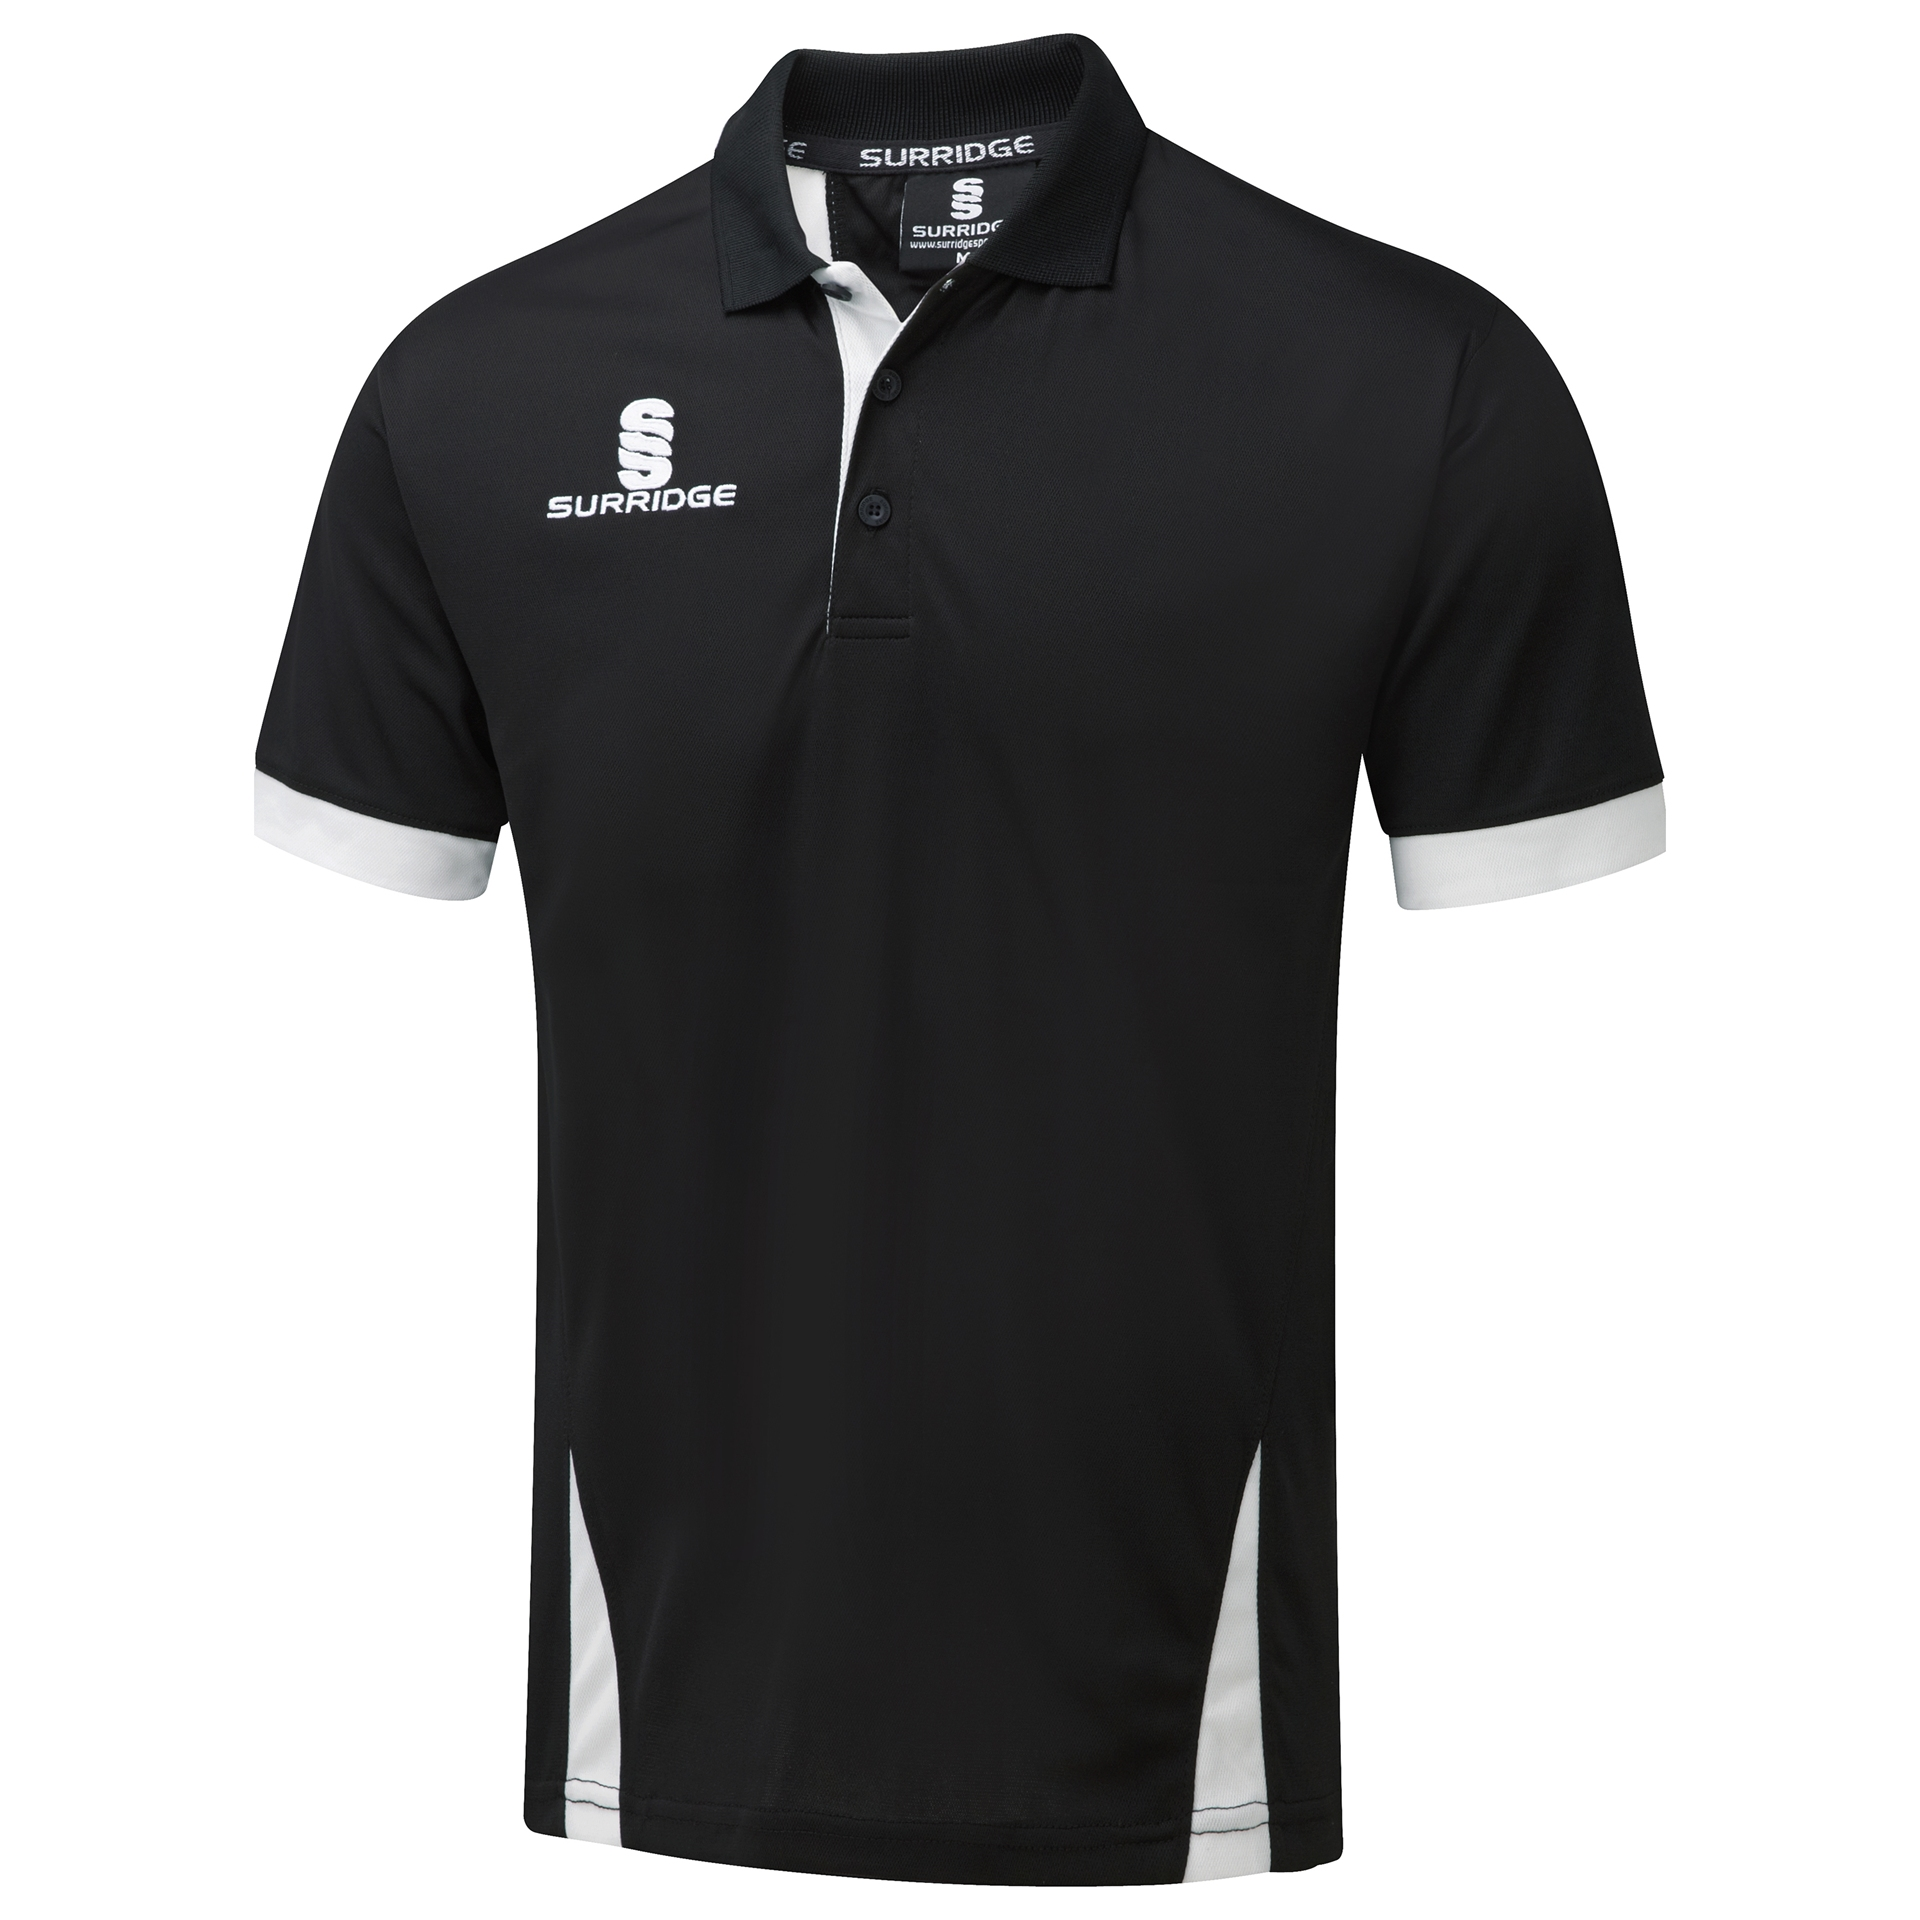 Surridge Sport Blade Polo Shirt Black White